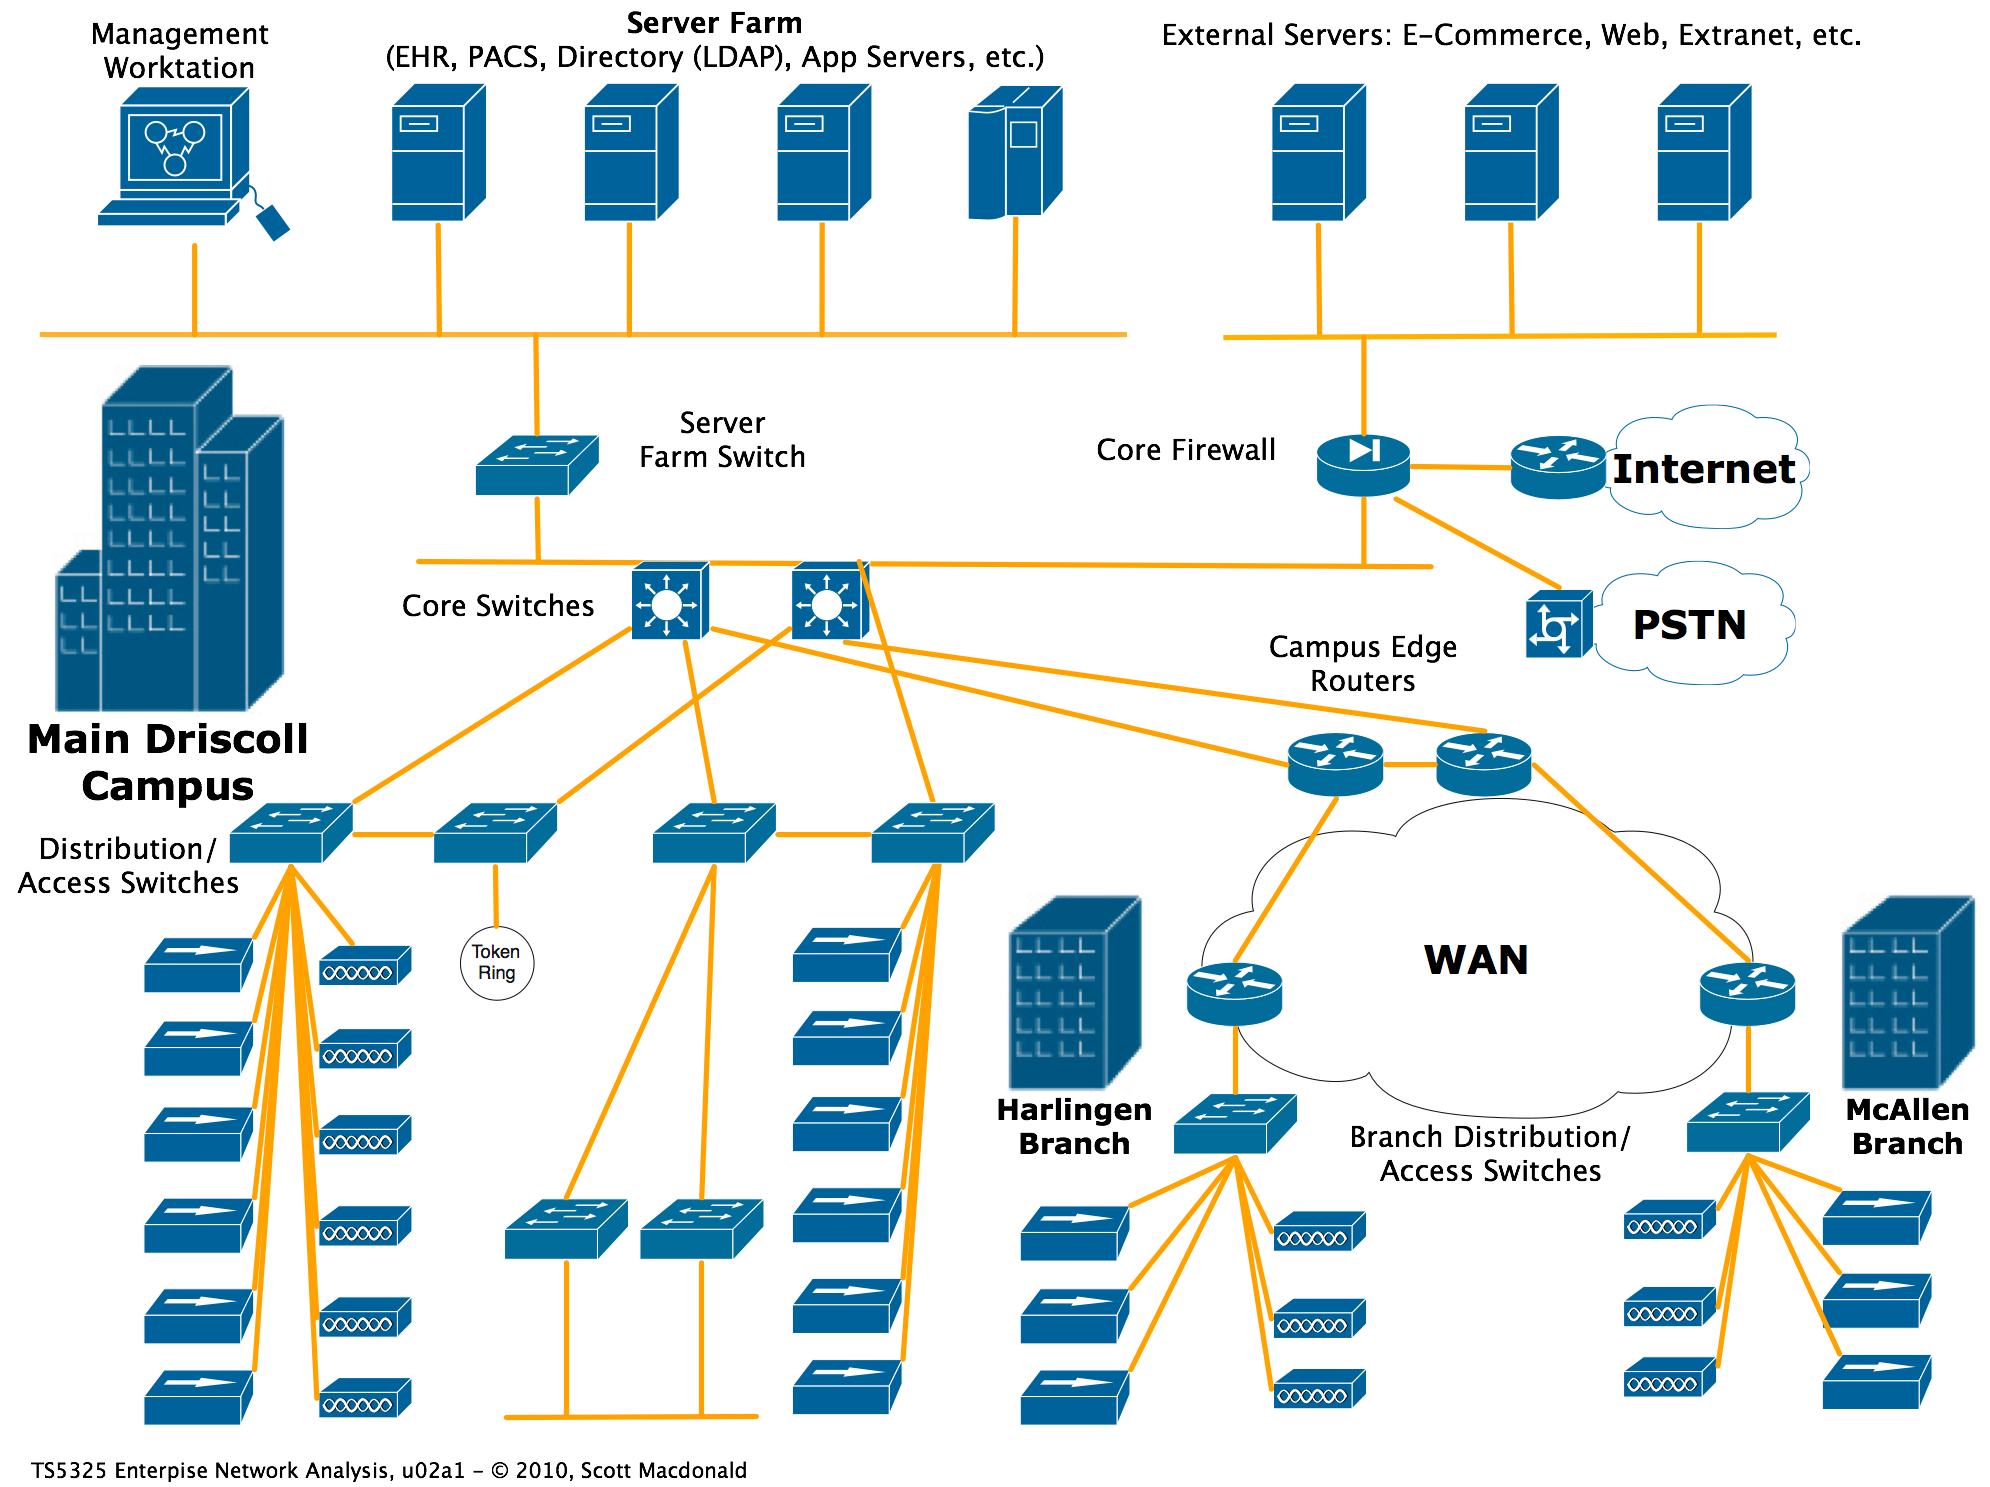 network diagram networking in 2019 computer network network core switch network diagram [ 1990 x 1487 Pixel ]